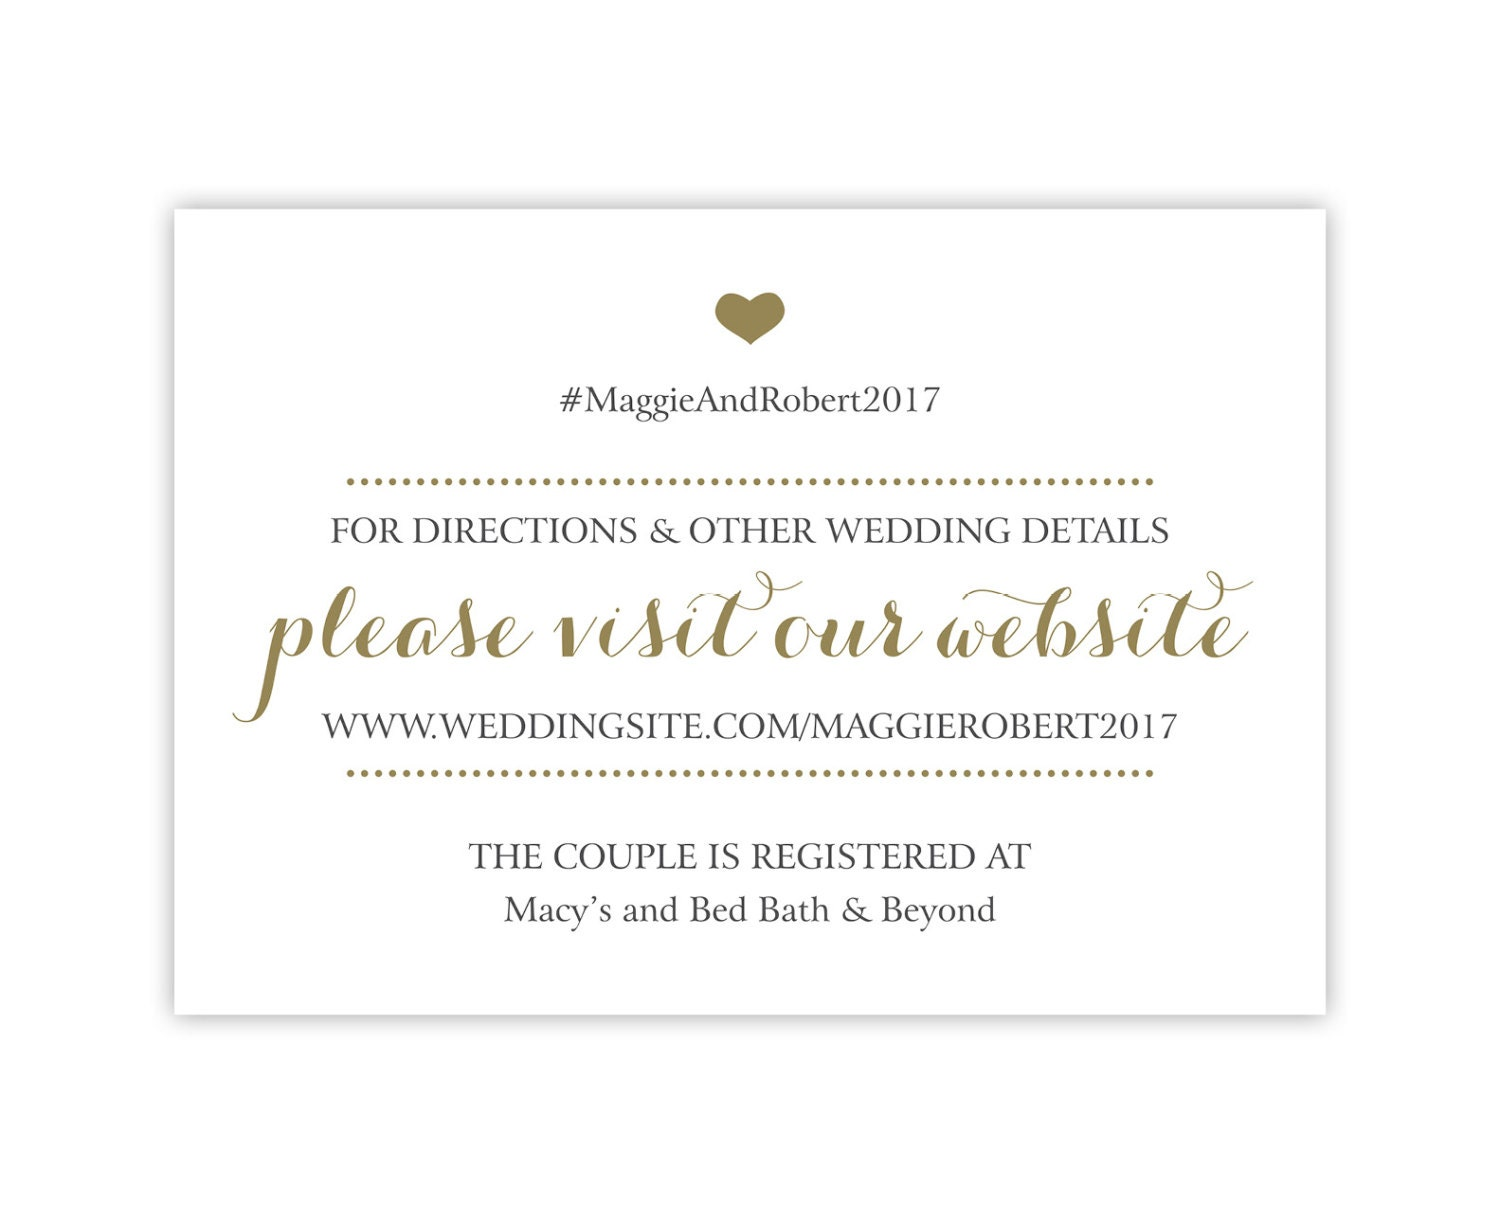 Wedding Registry Cards Enclosure Cards Wedding Website Cards Or Hashtag Cards Printed Inserts